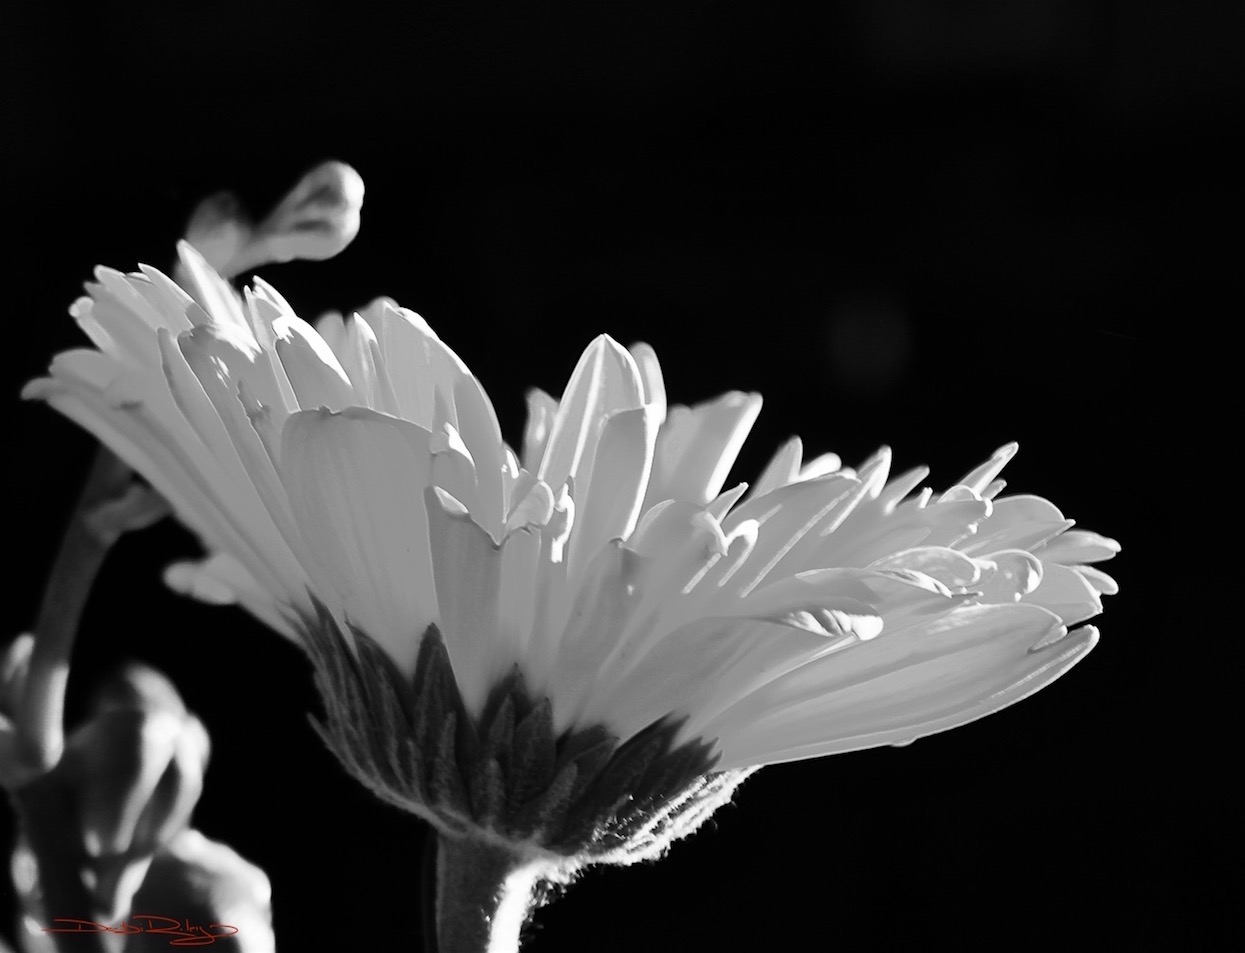 flower petals black and white photograph, in the light, debiriley.com